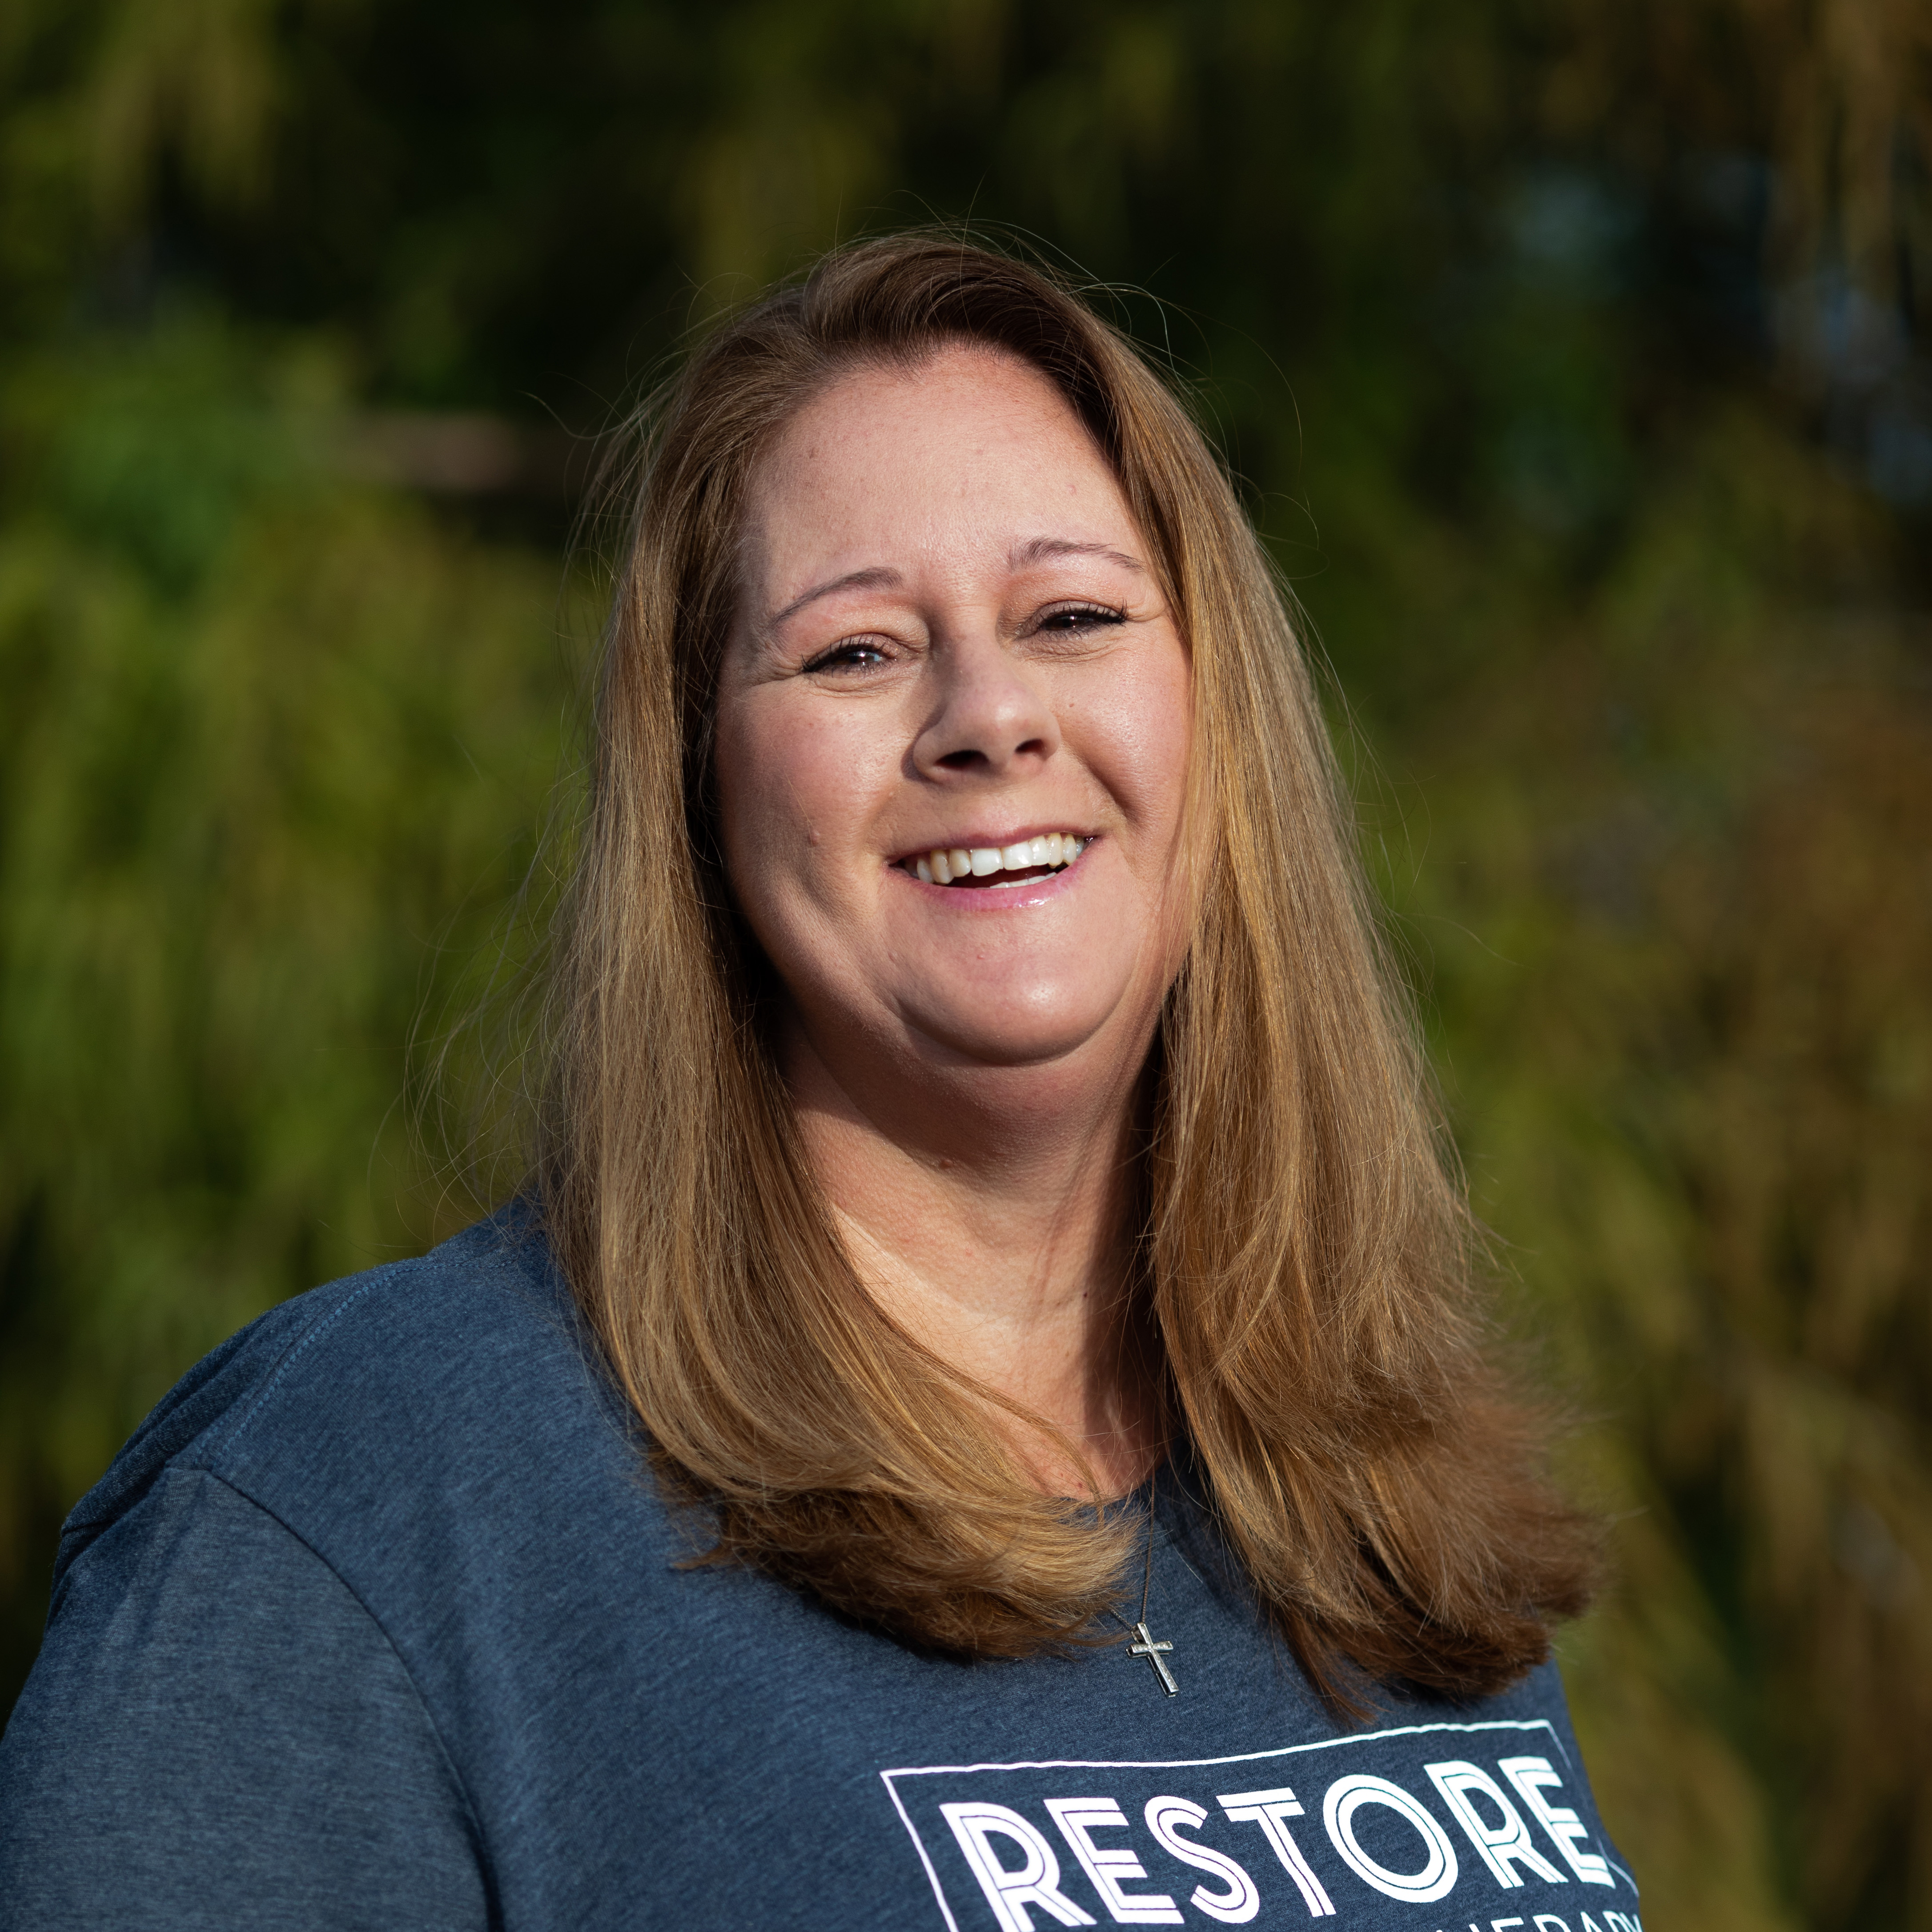 Hannah Merrit is a physical therapy assistant located in Lynn Haven and Panama City FL. Working at Restore Physical Therapy an outpatient physical therapy clinic.